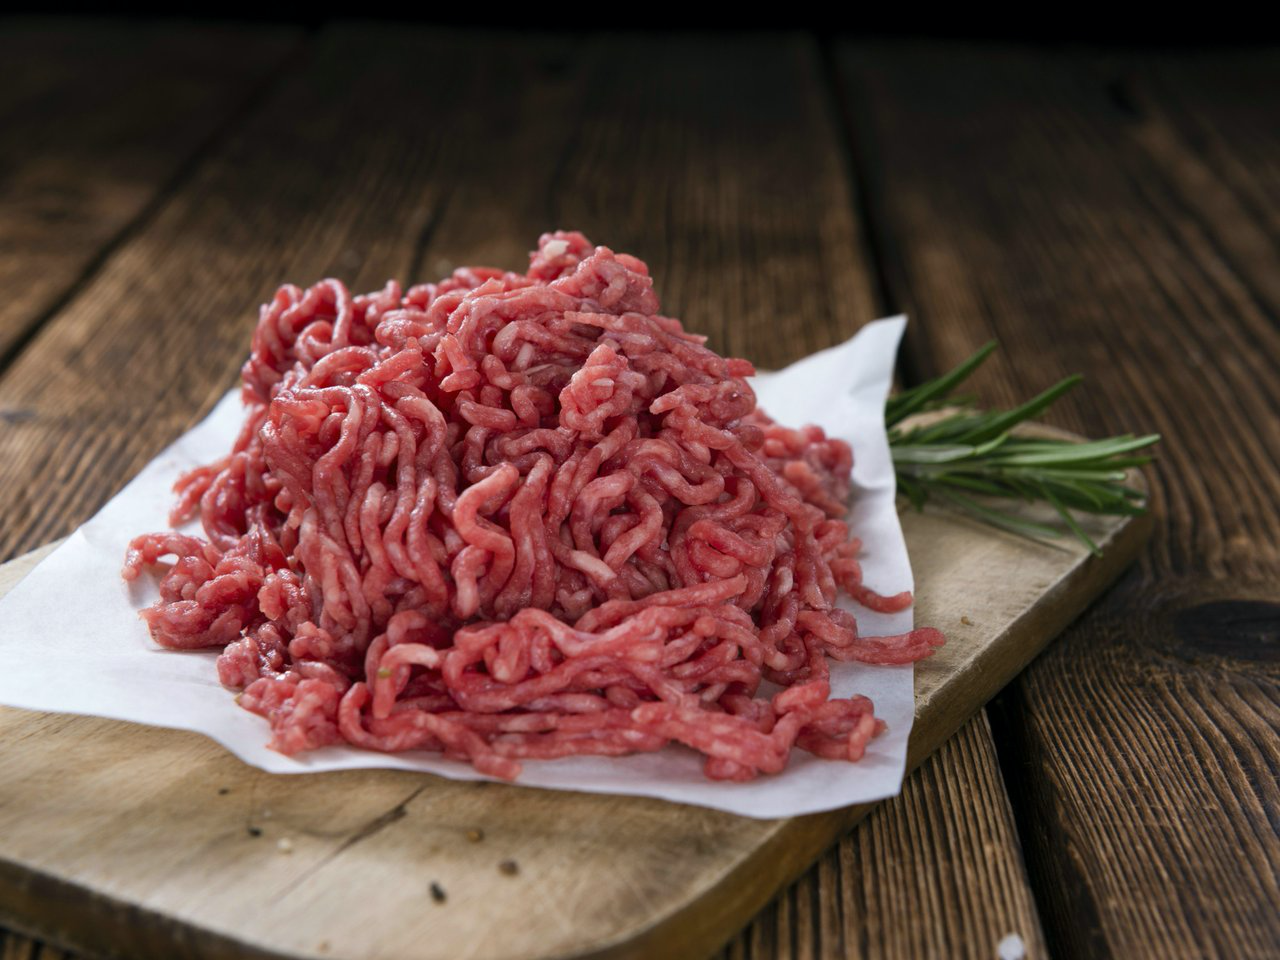 Butcher's Choice 80/20 Ground Beef, 10 LB Case, 4-2.5 LB Cryovacs, $4.50/LB